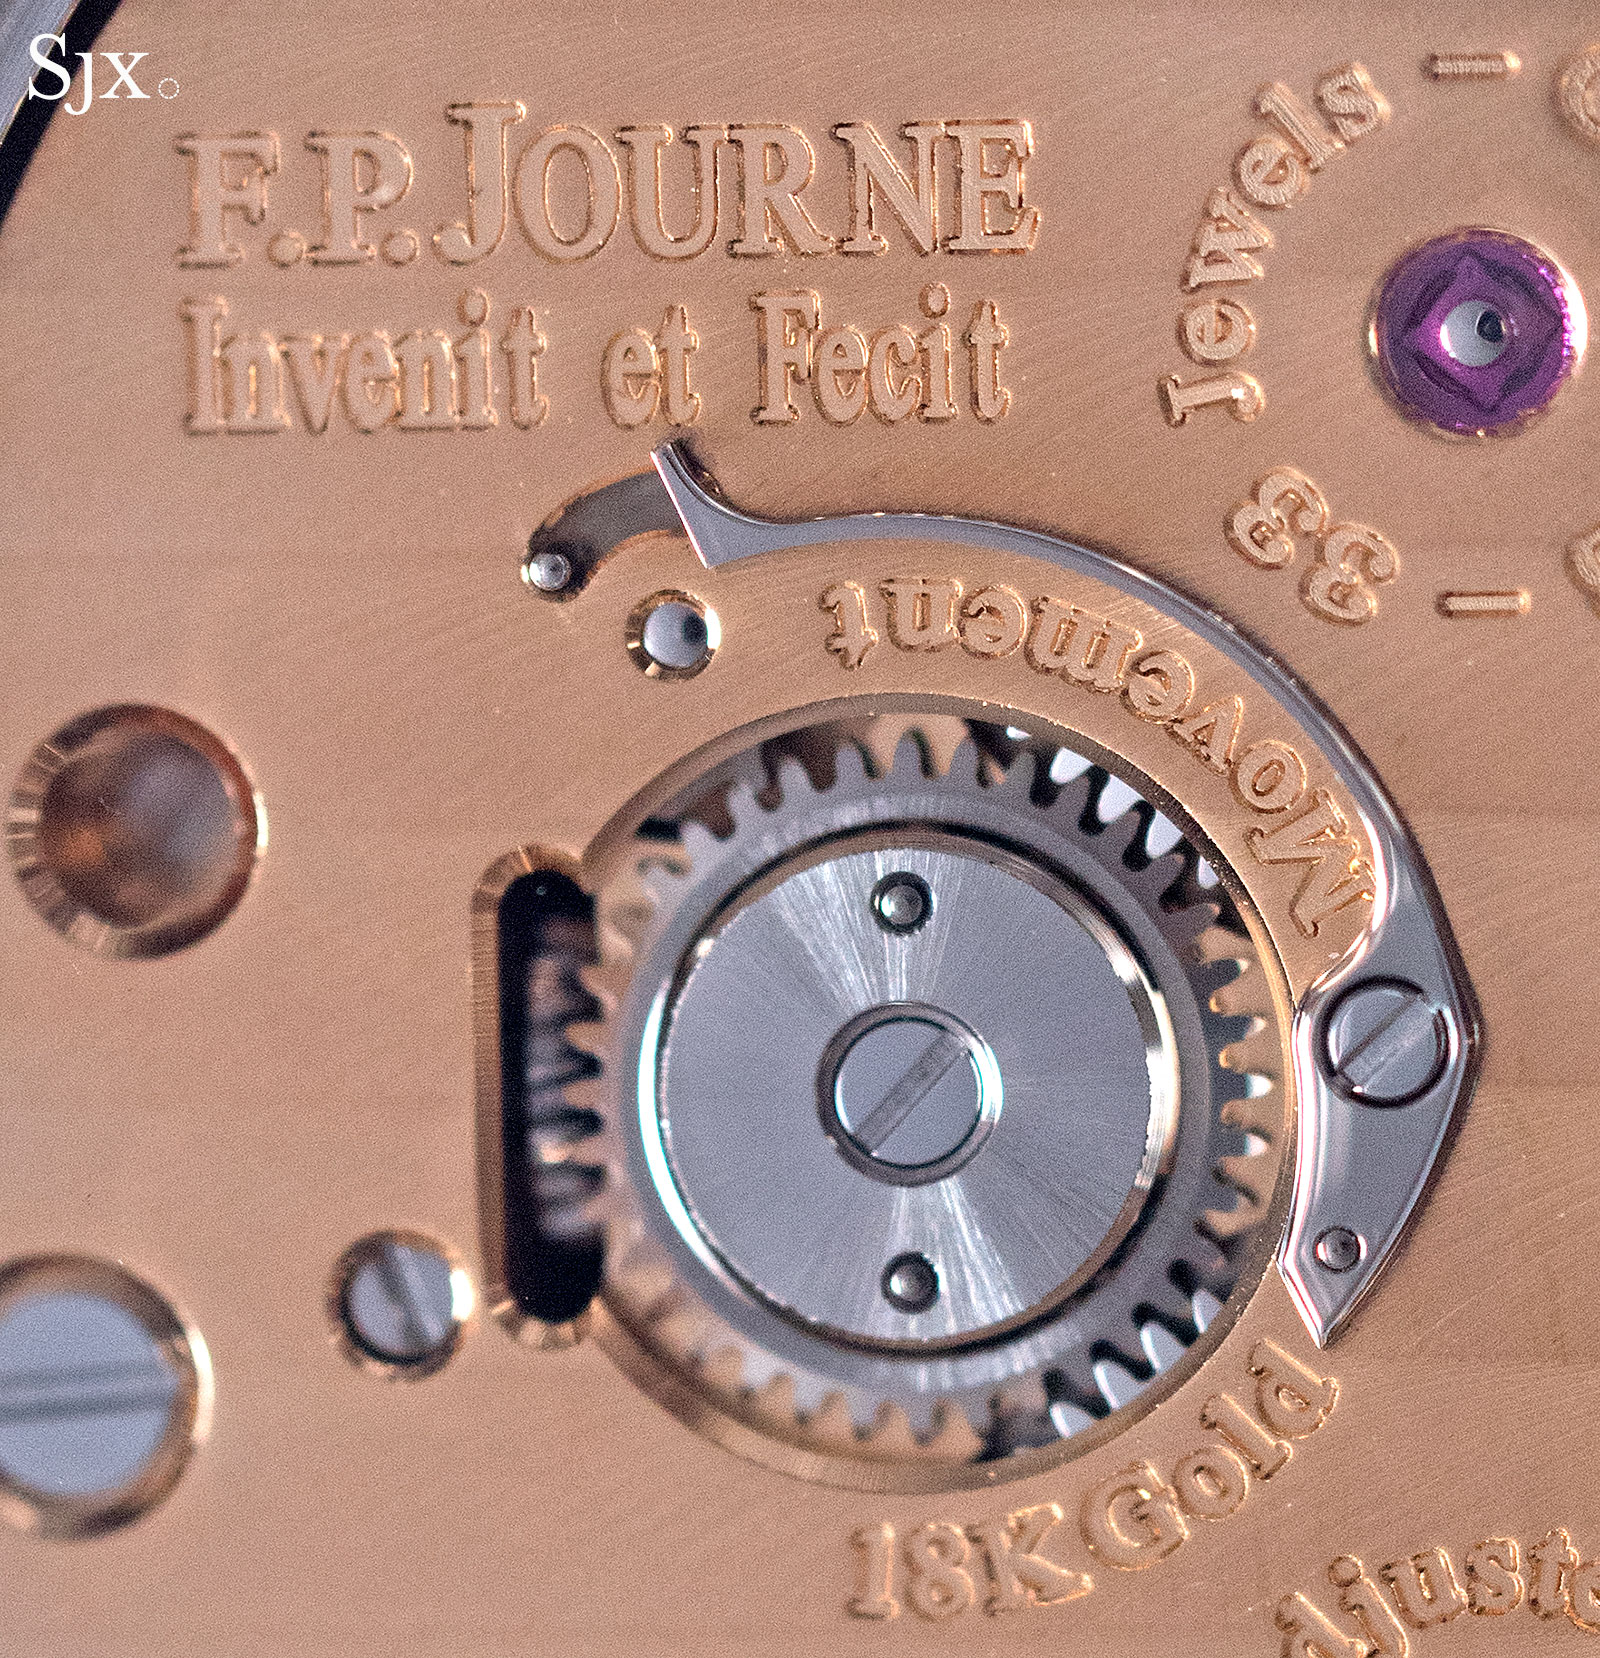 FP Journe Black Label Minute Repeater 5